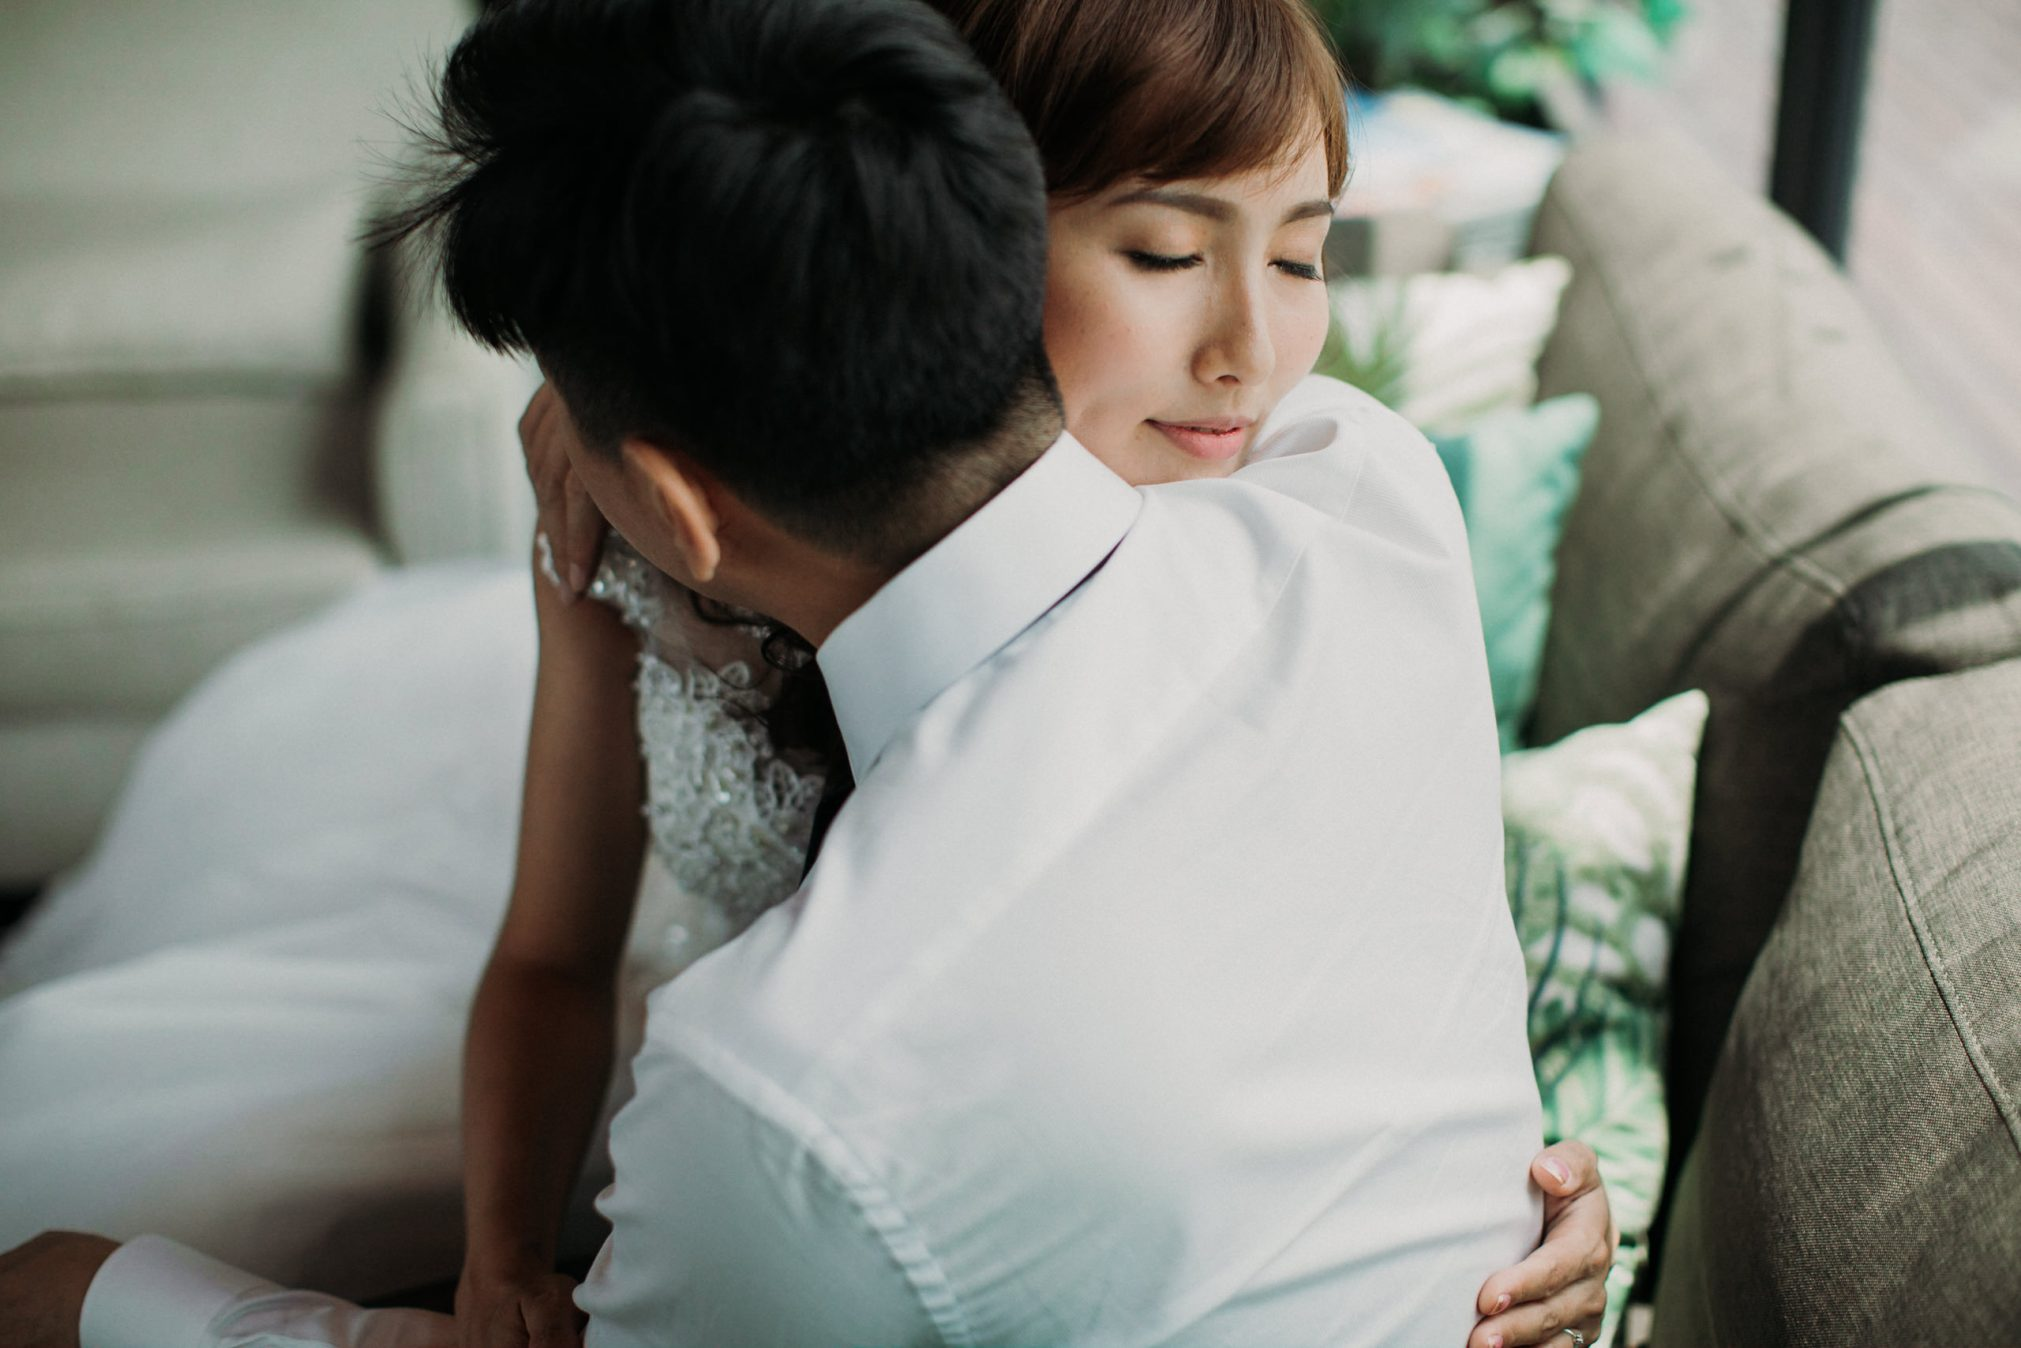 cliff choong destination portrait and wedding photographer malaysia kuala lumpur prewedding sunset golden sunrise shots bride and groom mountain in the city couple kiss romantic intimate moment scene couple woods casual couple portrait cafe indoor shots